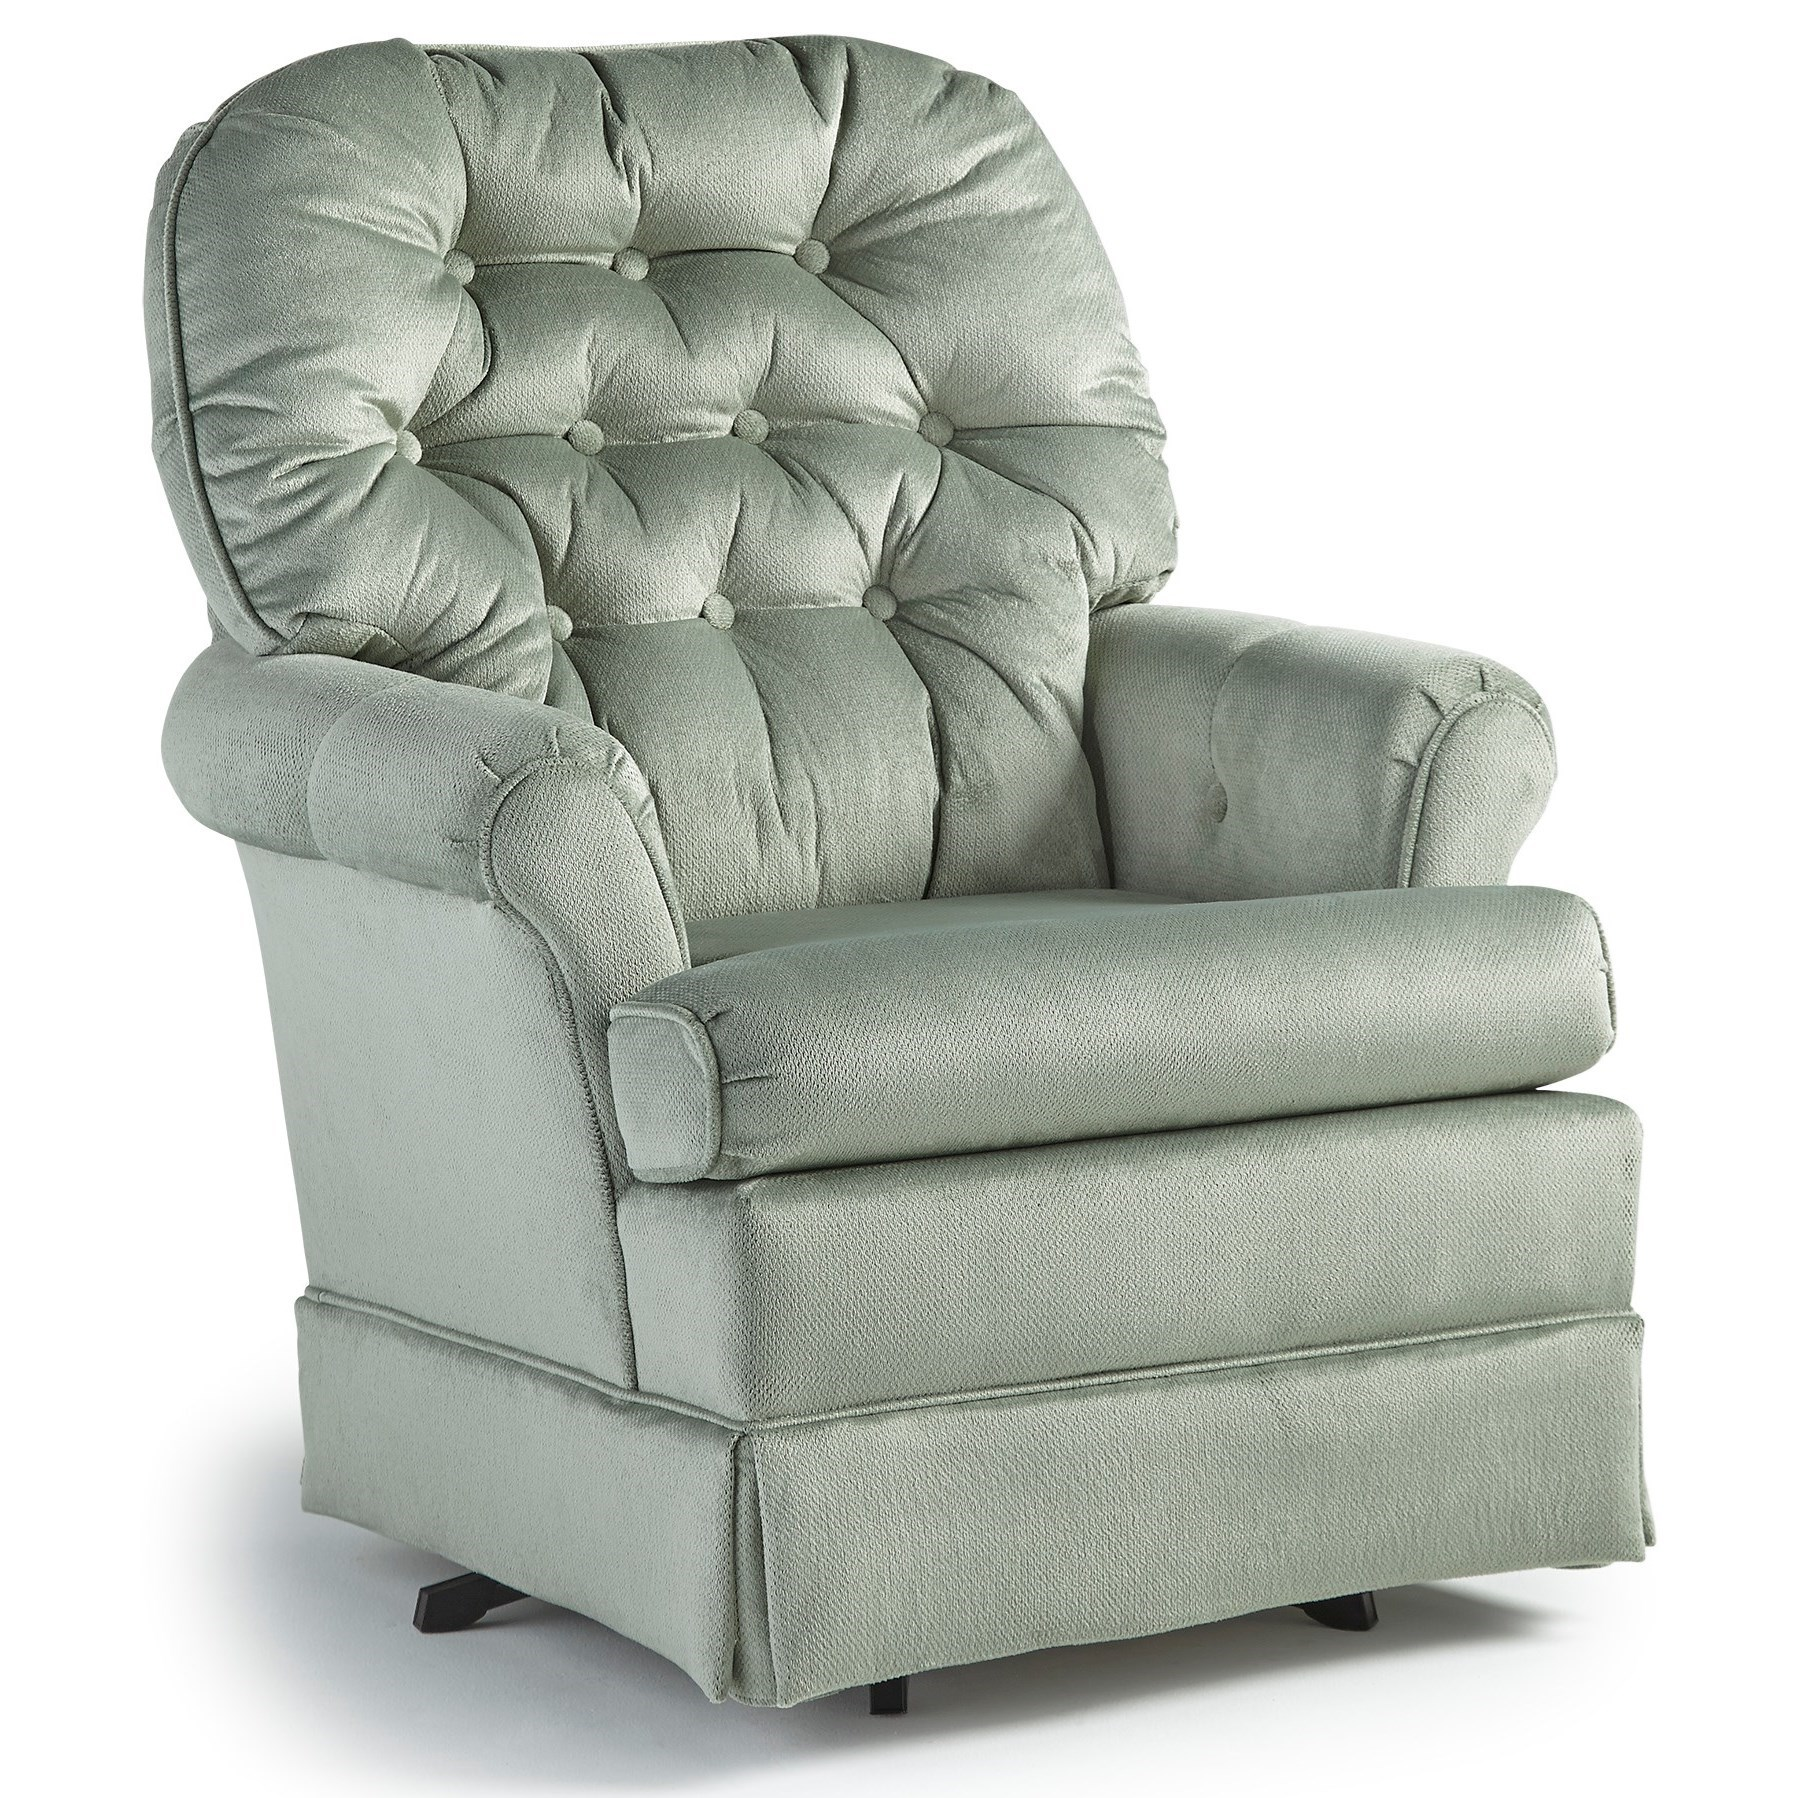 Best Home Furnishings Chairs - Swivel Glide Marla Swivel Rocker Chair - Item Number: 1559